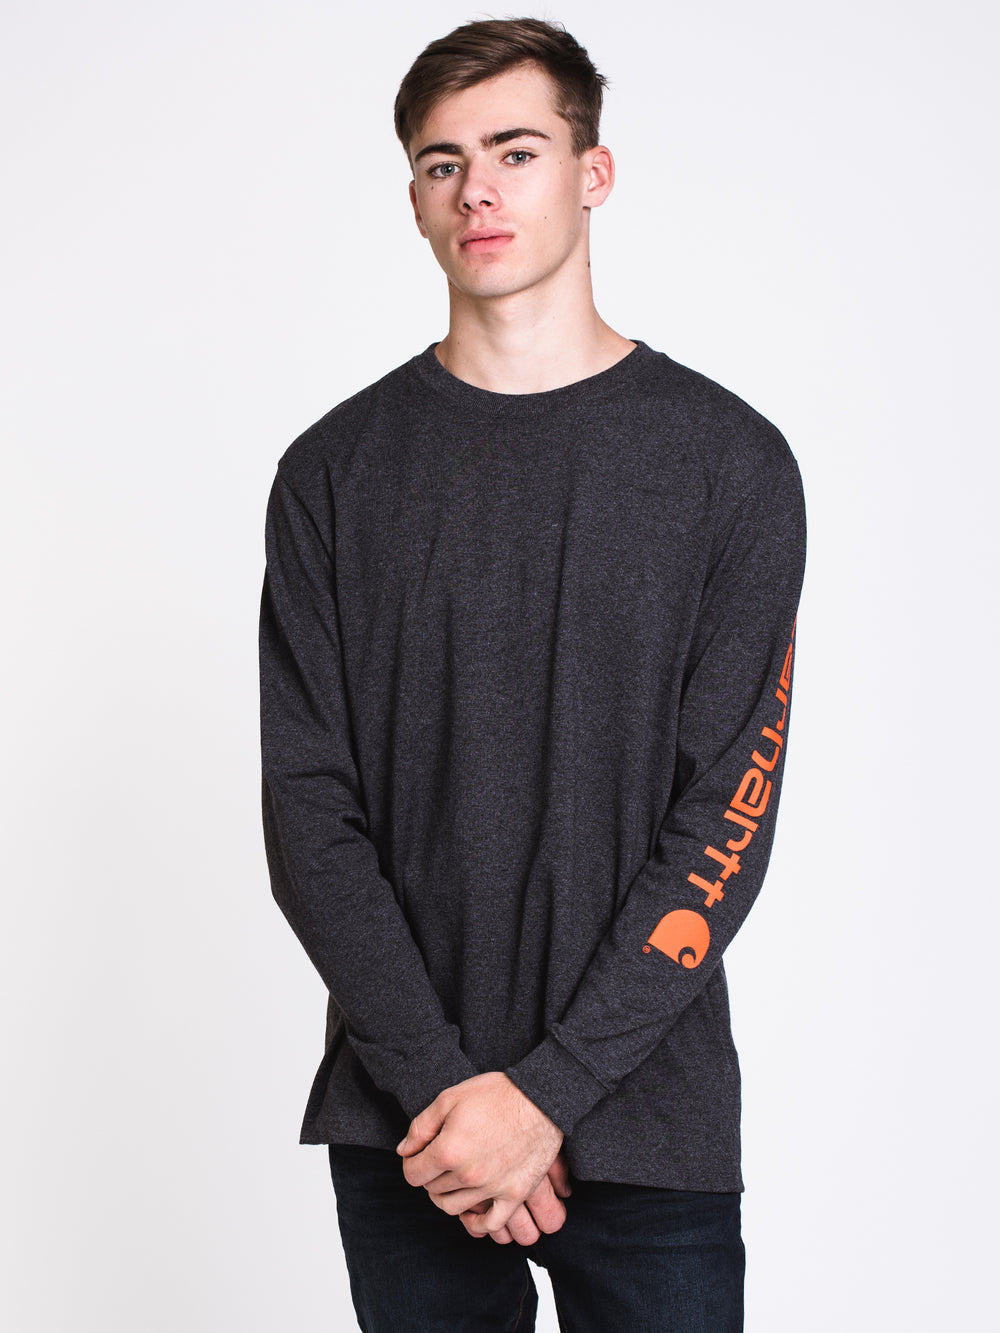 MENS CARHARTT SIG LONG SLEEVET-SHIRT- CARBON